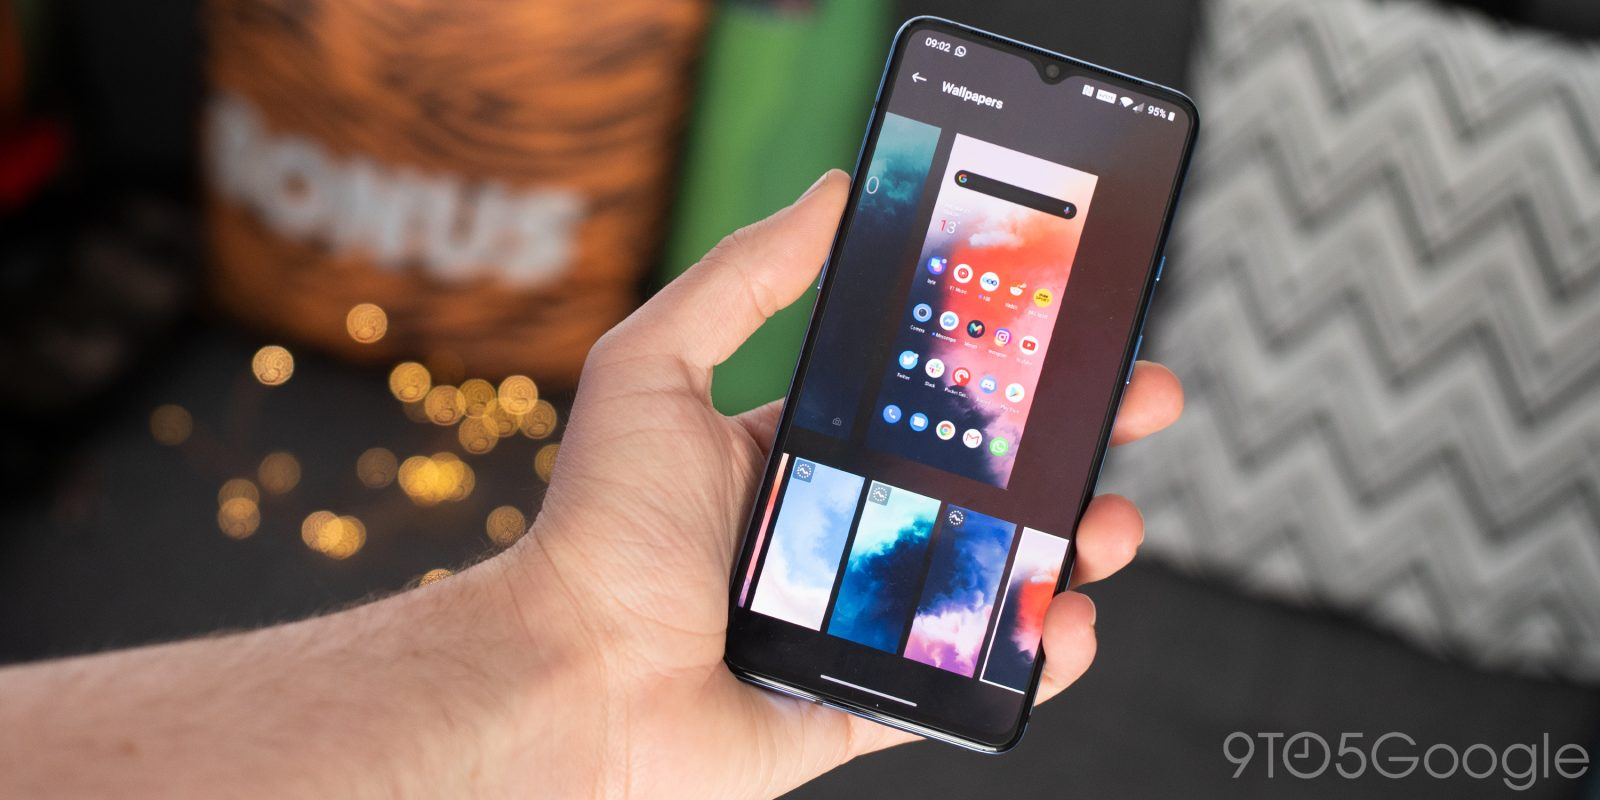 How To Download The Oneplus 7t Wallpapers To Your Phone